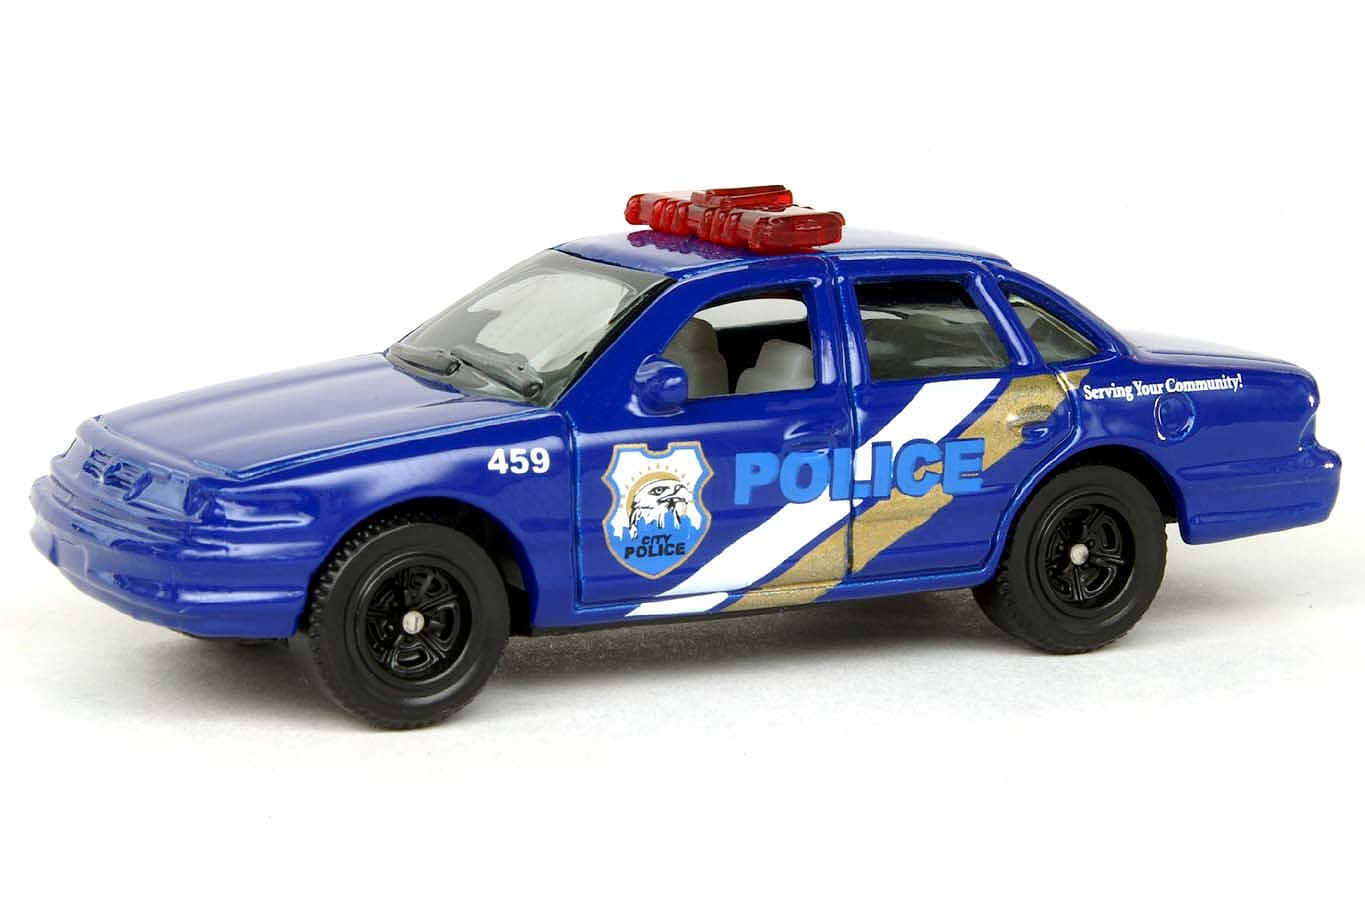 1997 Ford Crown Victoria Police Matchbox Cars Wiki